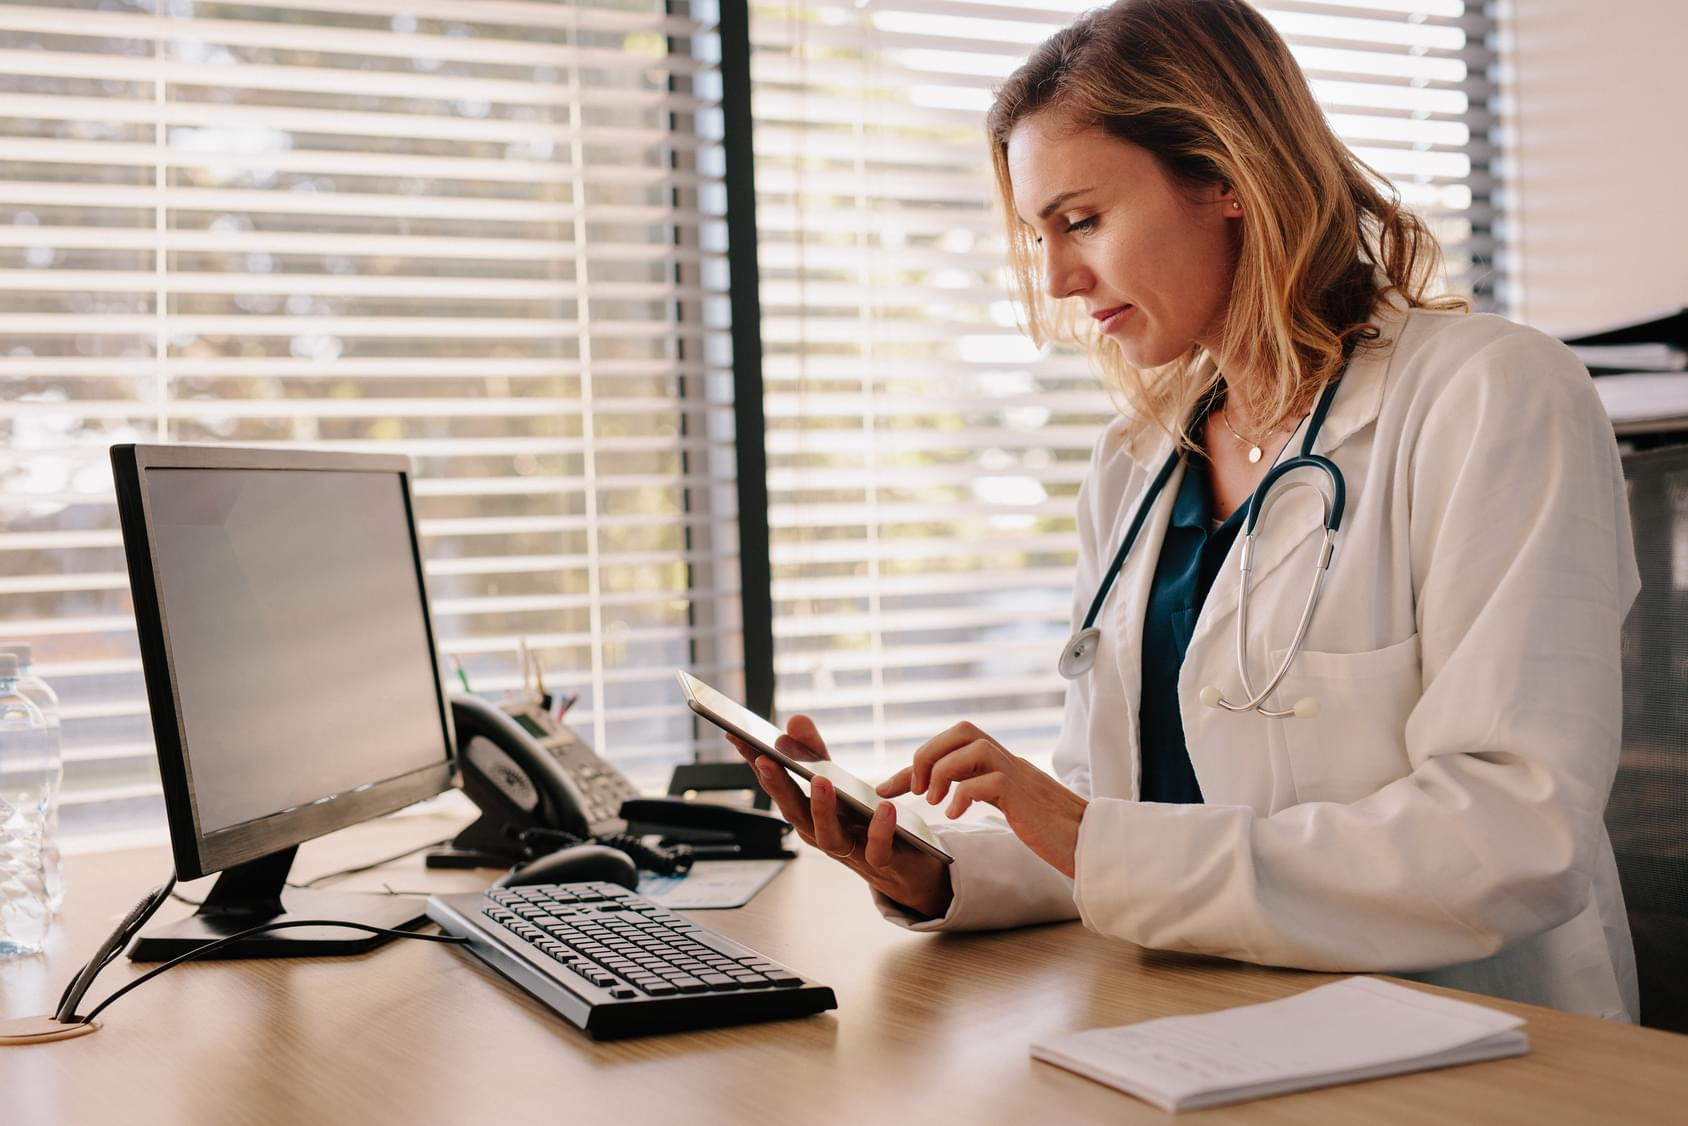 Doctor accessing an EHR from her tablet